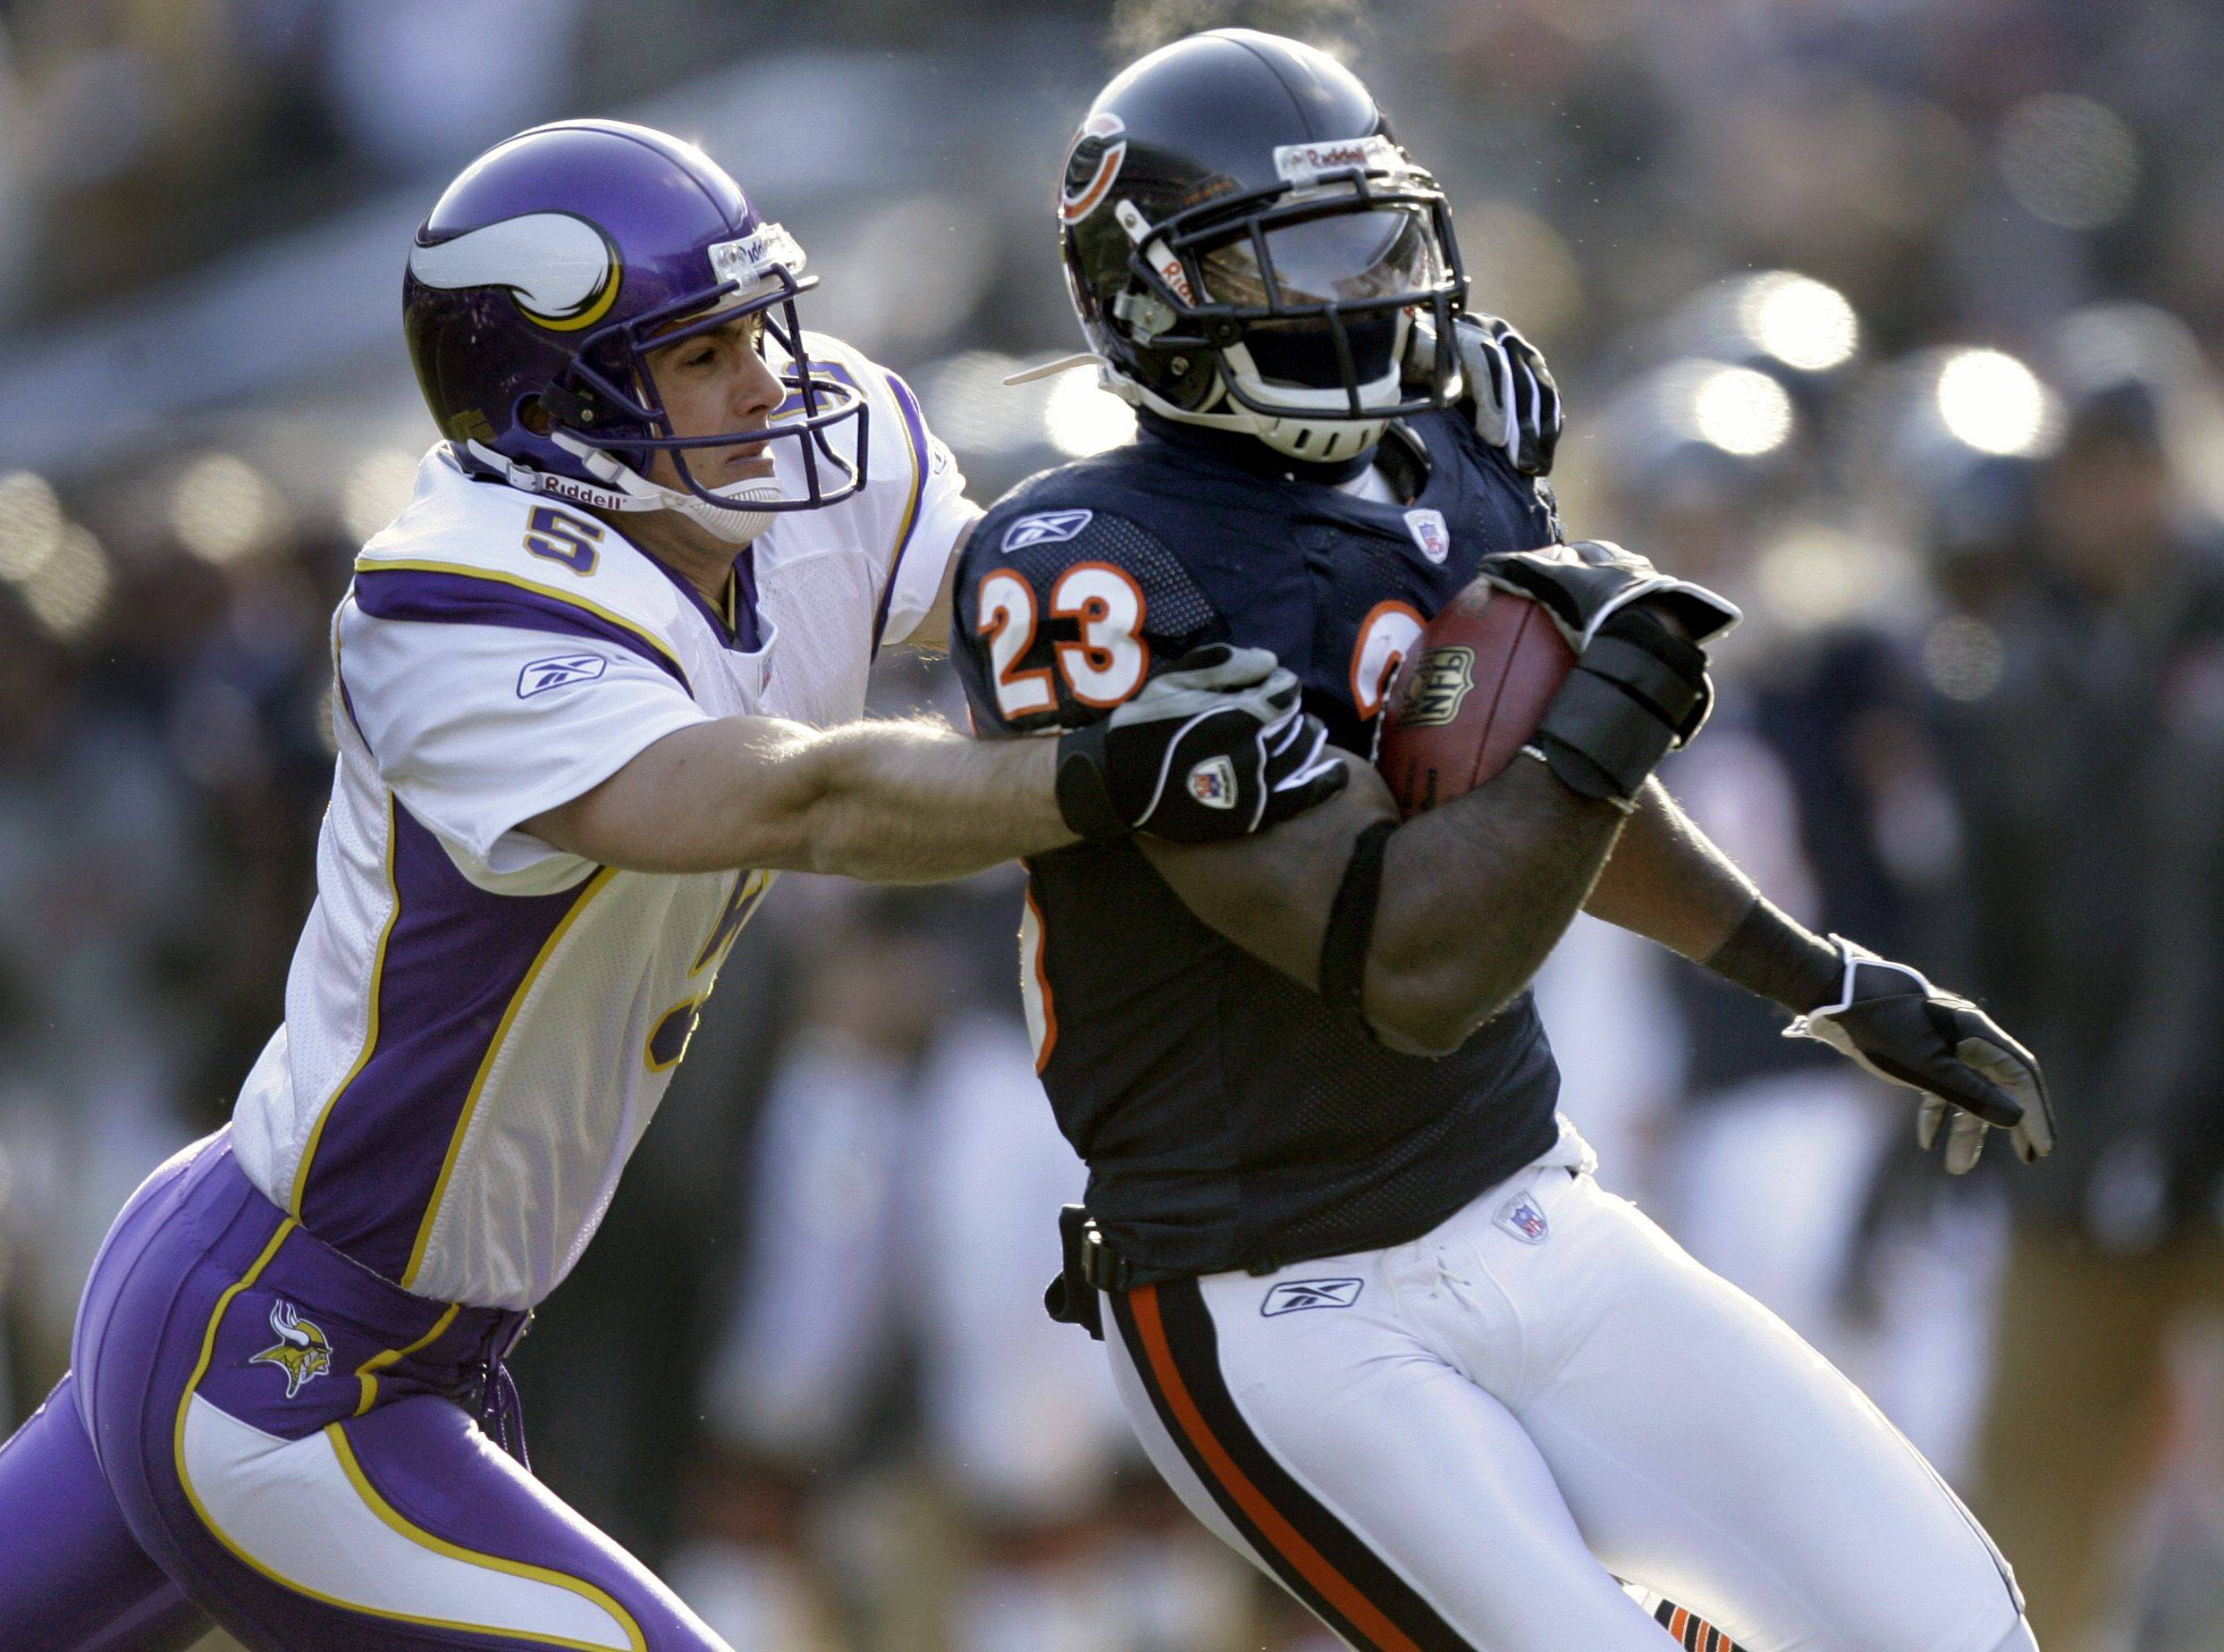 No. 3: Minnesota Vikings punter Chris Kluwe, left, grabs the Bears' Devin Hester as Hester heads to the end zone for a 45-yard punt return for a touchdown against the Vikings on Dec. 3, 2006.